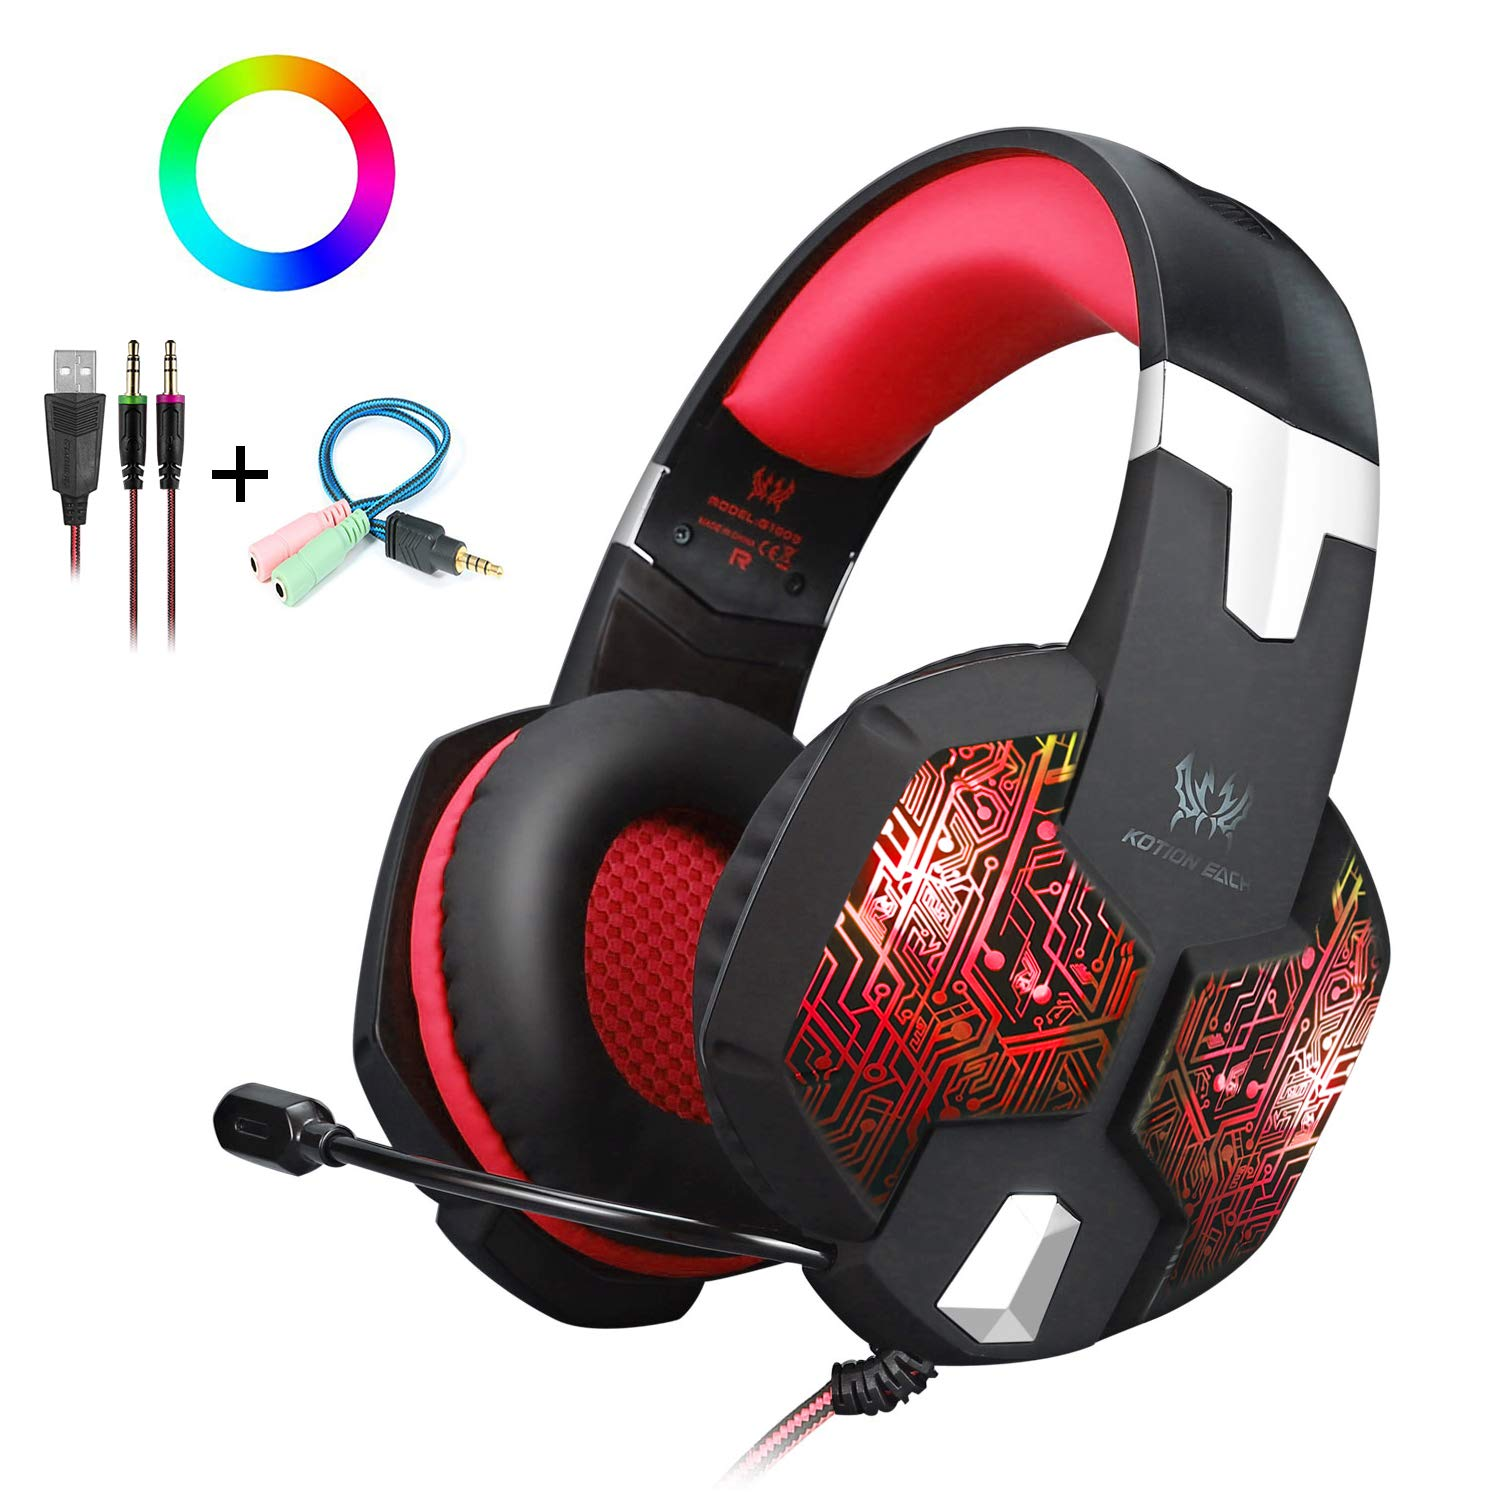 Gaming Headset with Mic and USB RGB LED Light for PS4 Xbox One PC Nintendo Switch,Lightweight Stereo Sound Over Ear Headphones,Soft Memory Earmuffs & Noise Cancelling & Volume Control (Red)